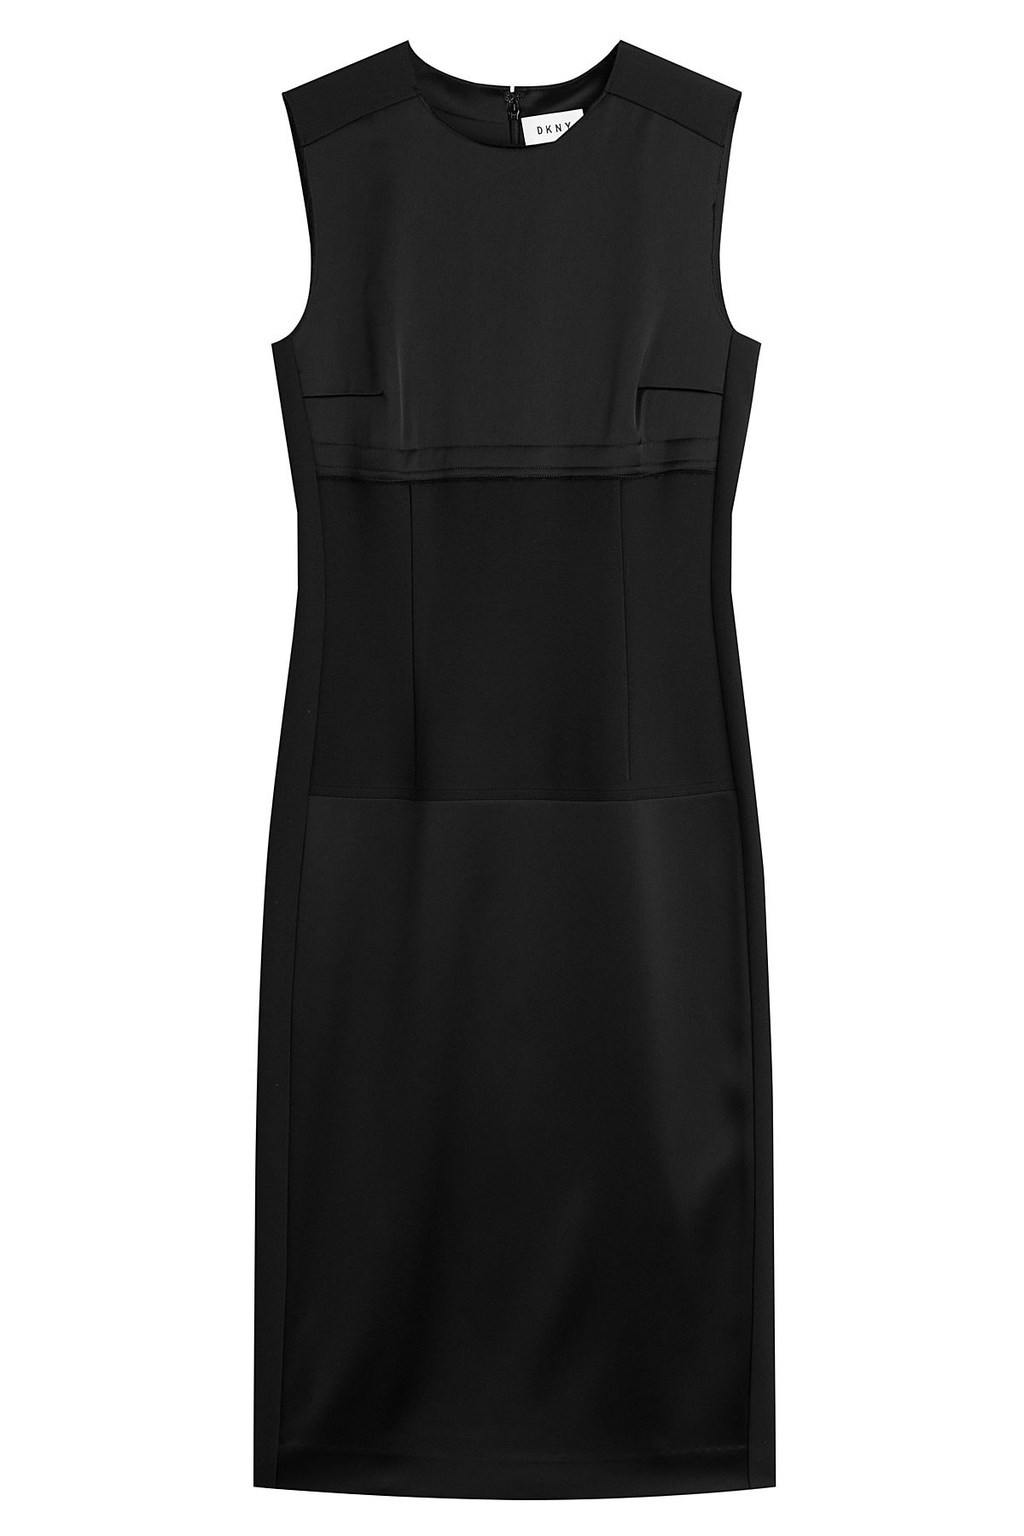 Dress With Satin Black - style: shift; length: below the knee; pattern: plain; sleeve style: sleeveless; predominant colour: black; occasions: evening; fit: body skimming; fibres: polyester/polyamide - mix; neckline: crew; sleeve length: sleeveless; texture group: structured shiny - satin/tafetta/silk etc.; pattern type: fabric; season: a/w 2016